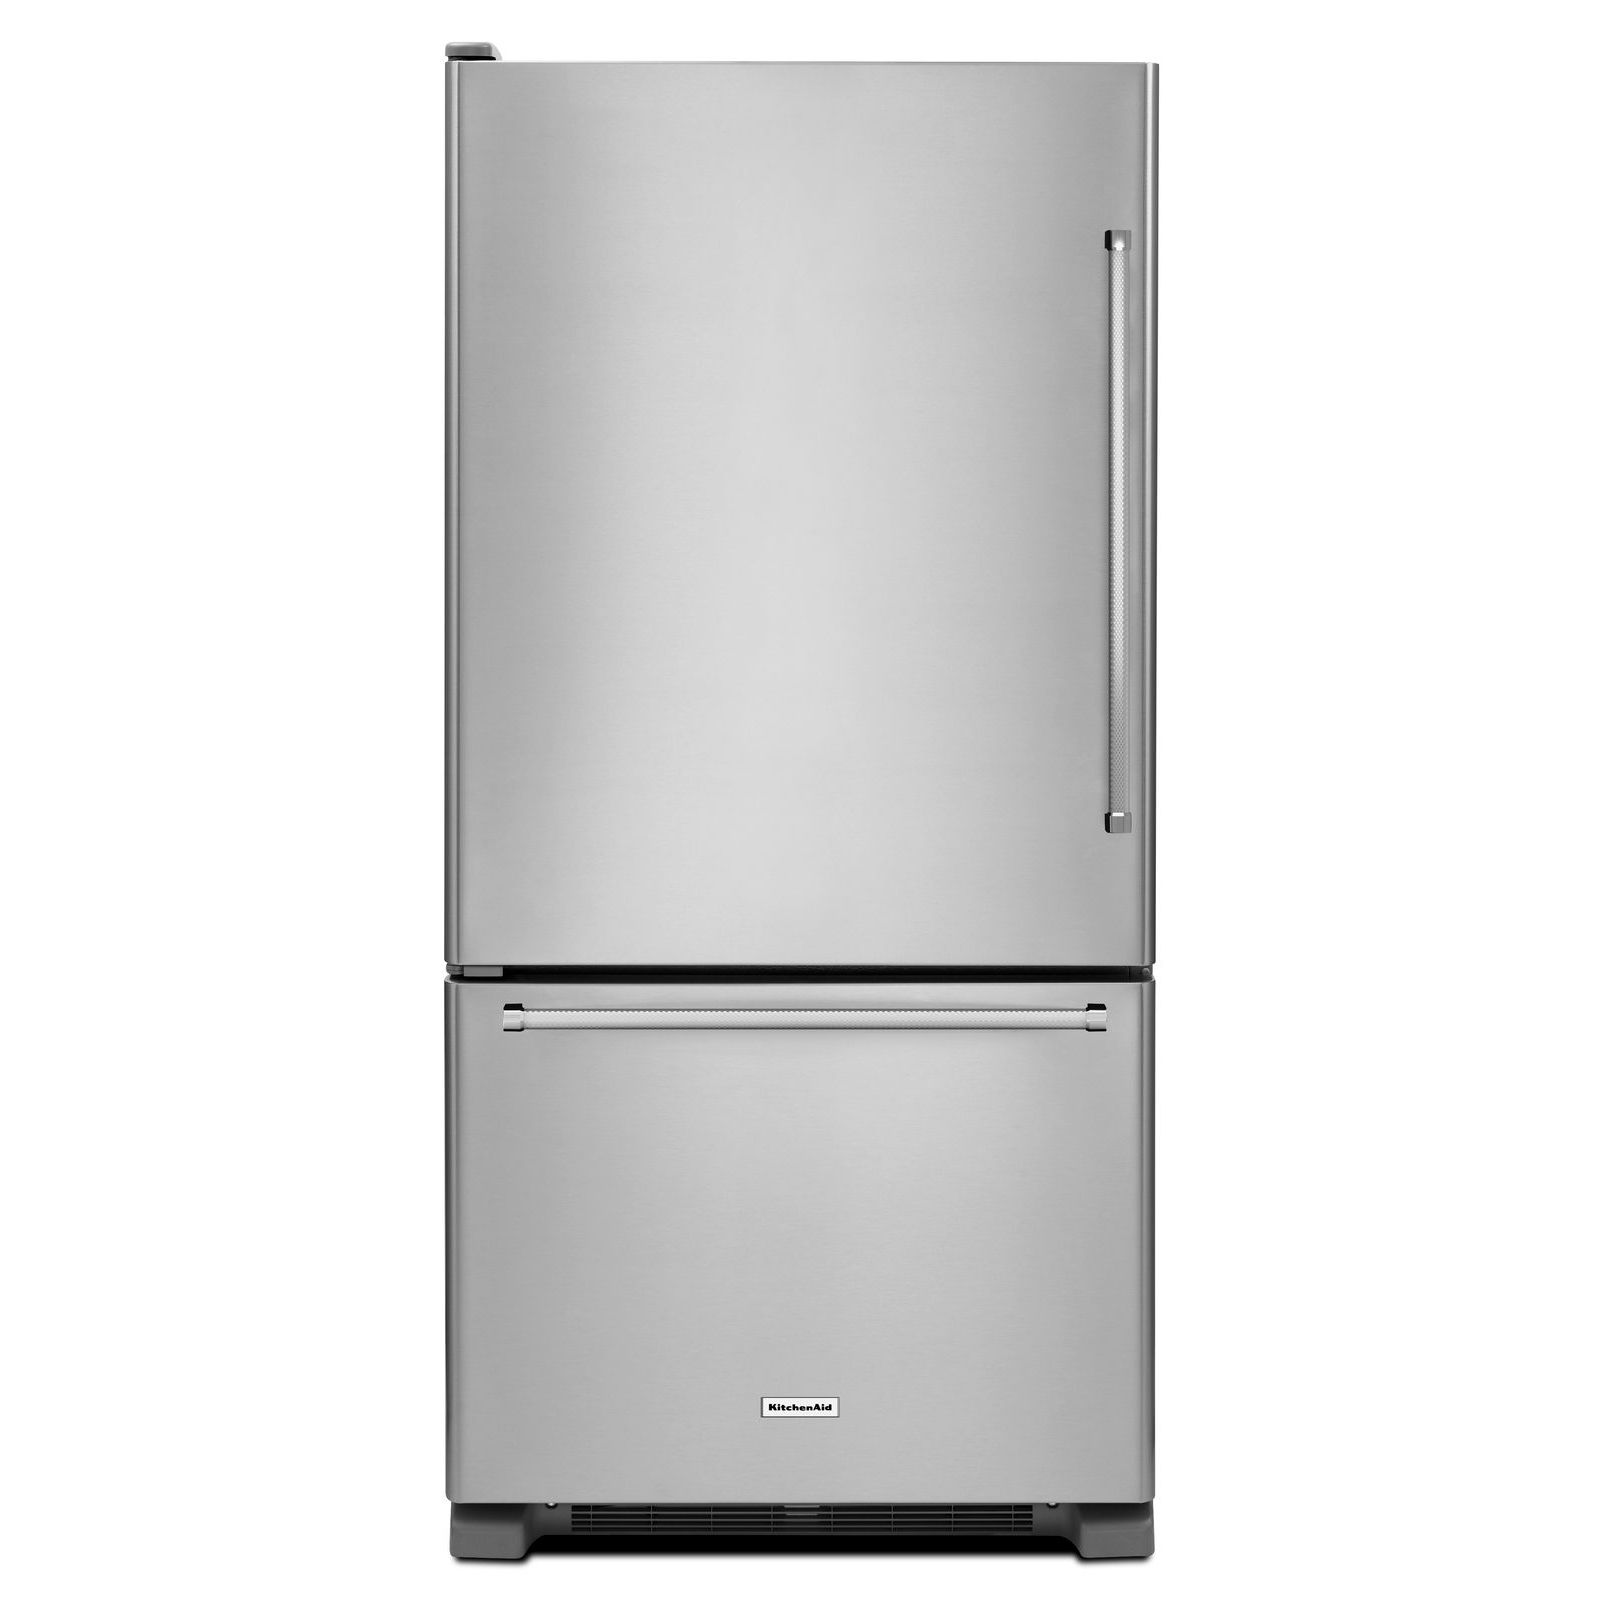 KRBL102ESS-22-cu-ft-Bottom-Mount-Refrigerator-Stainless-Steel